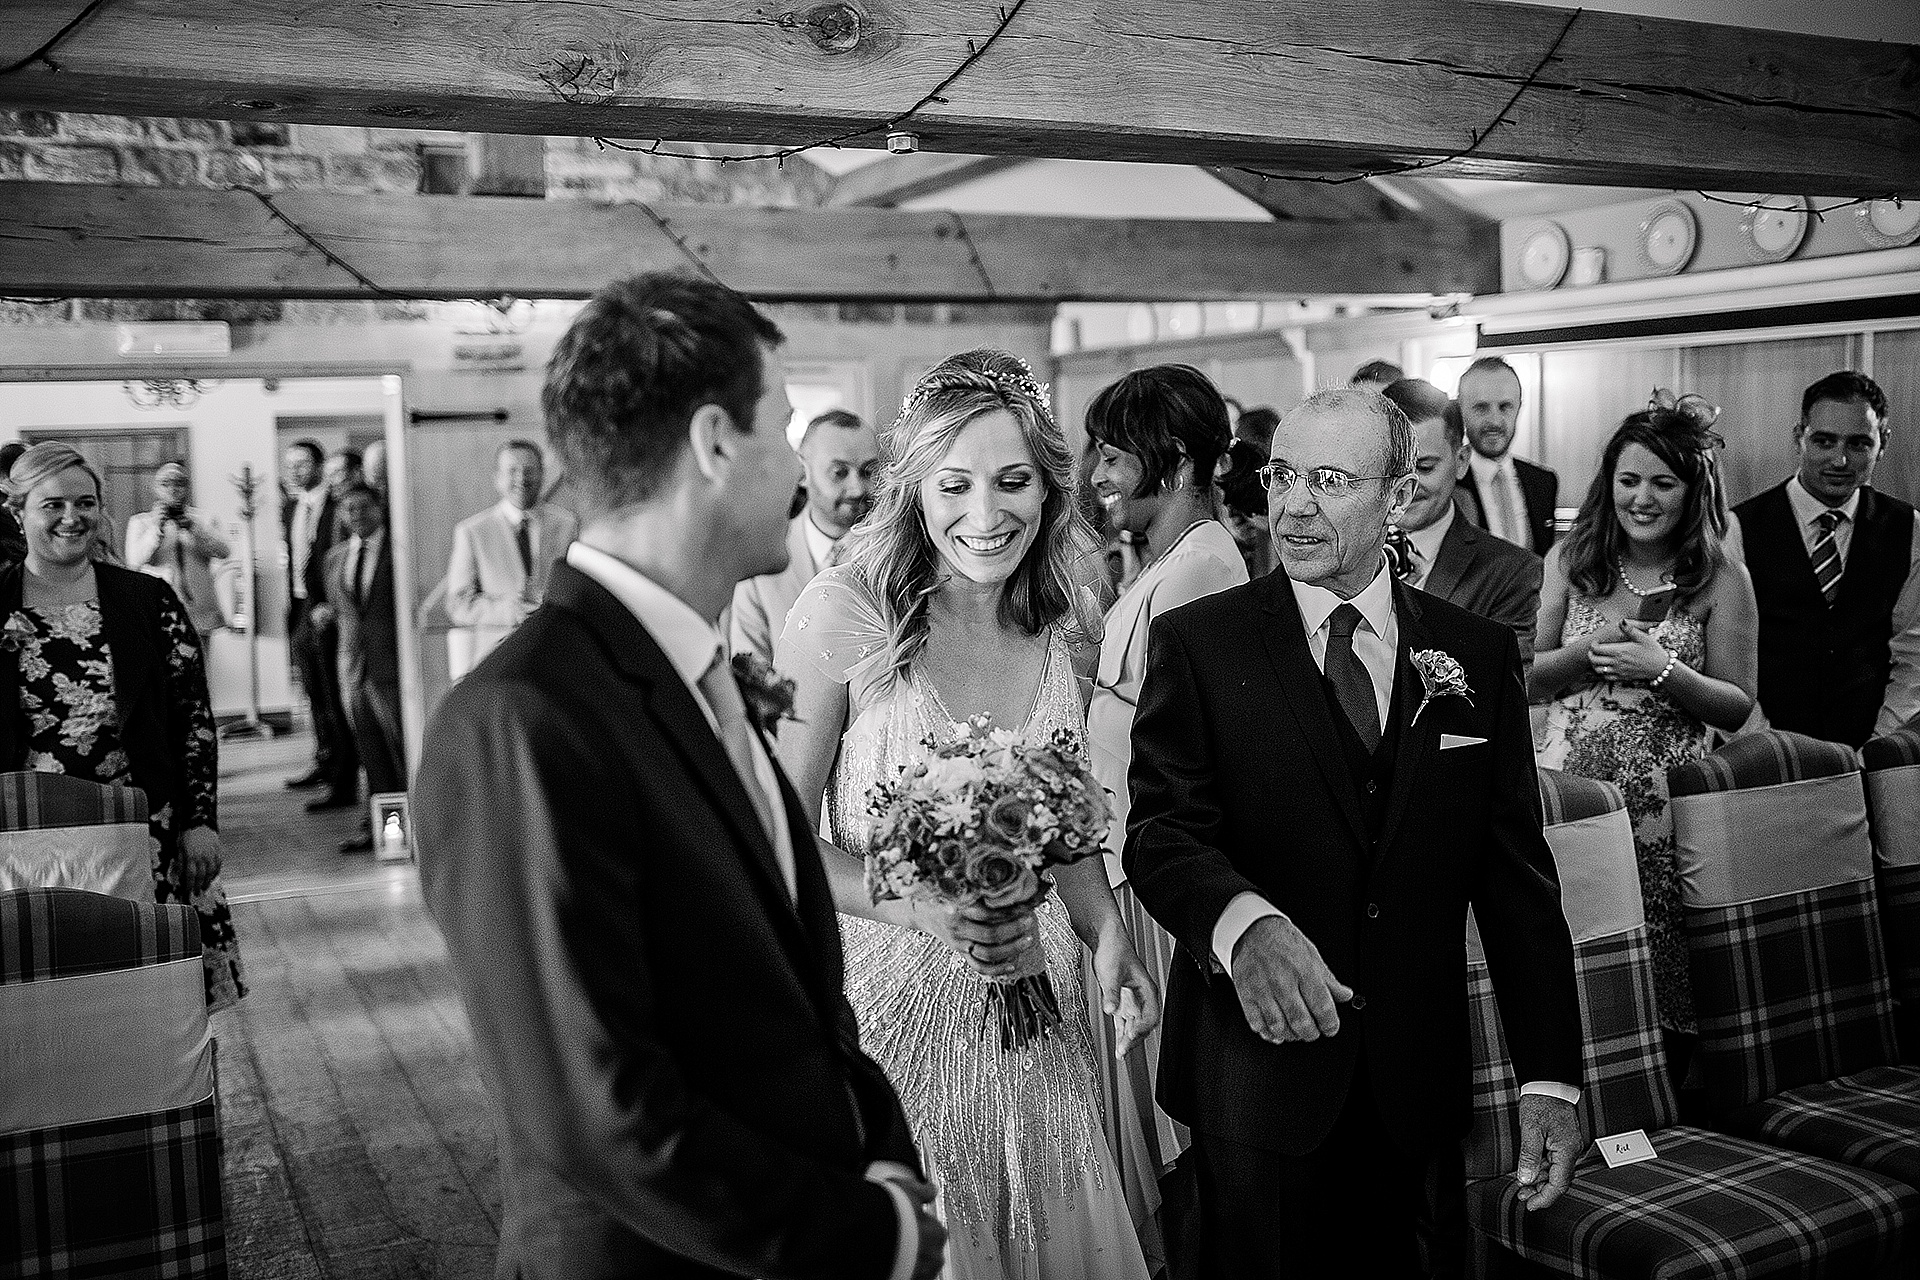 Jenny Packham Dress Getting Married at the Red Lion Wedding in The Yorkshire Dales from John Day Photography